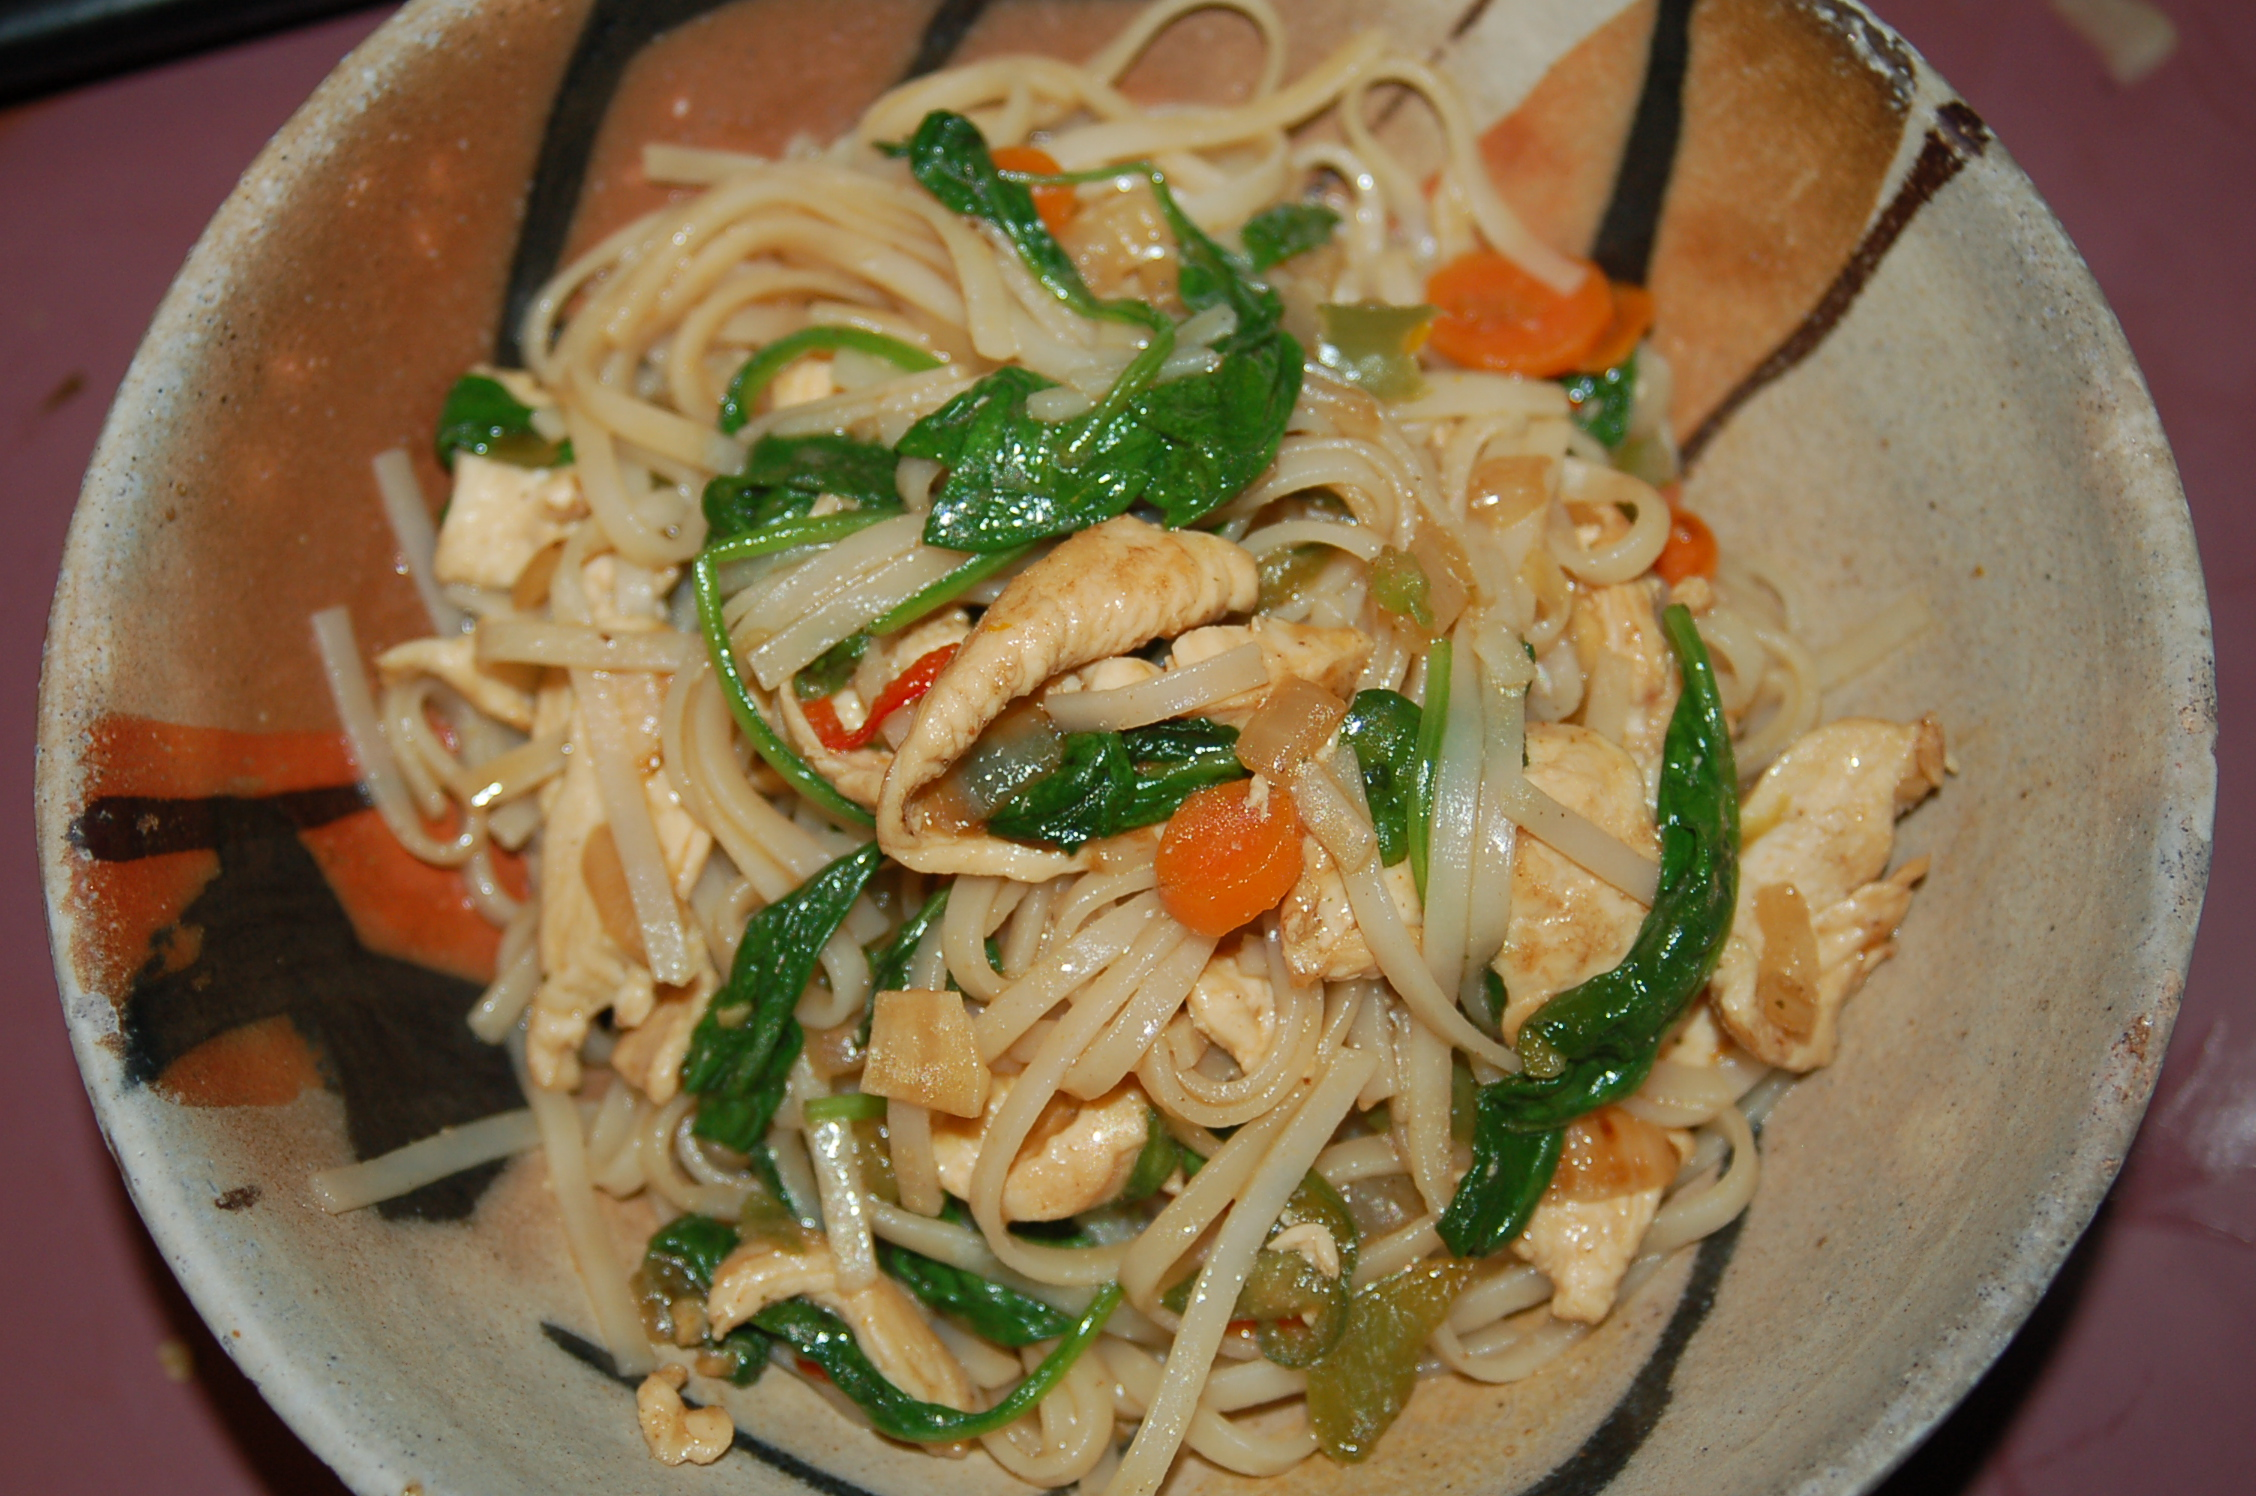 The Best Stir Fry Rice Noodles With Chicken And Vegetables Serves 4 Crappy Kitchen Good Dinners